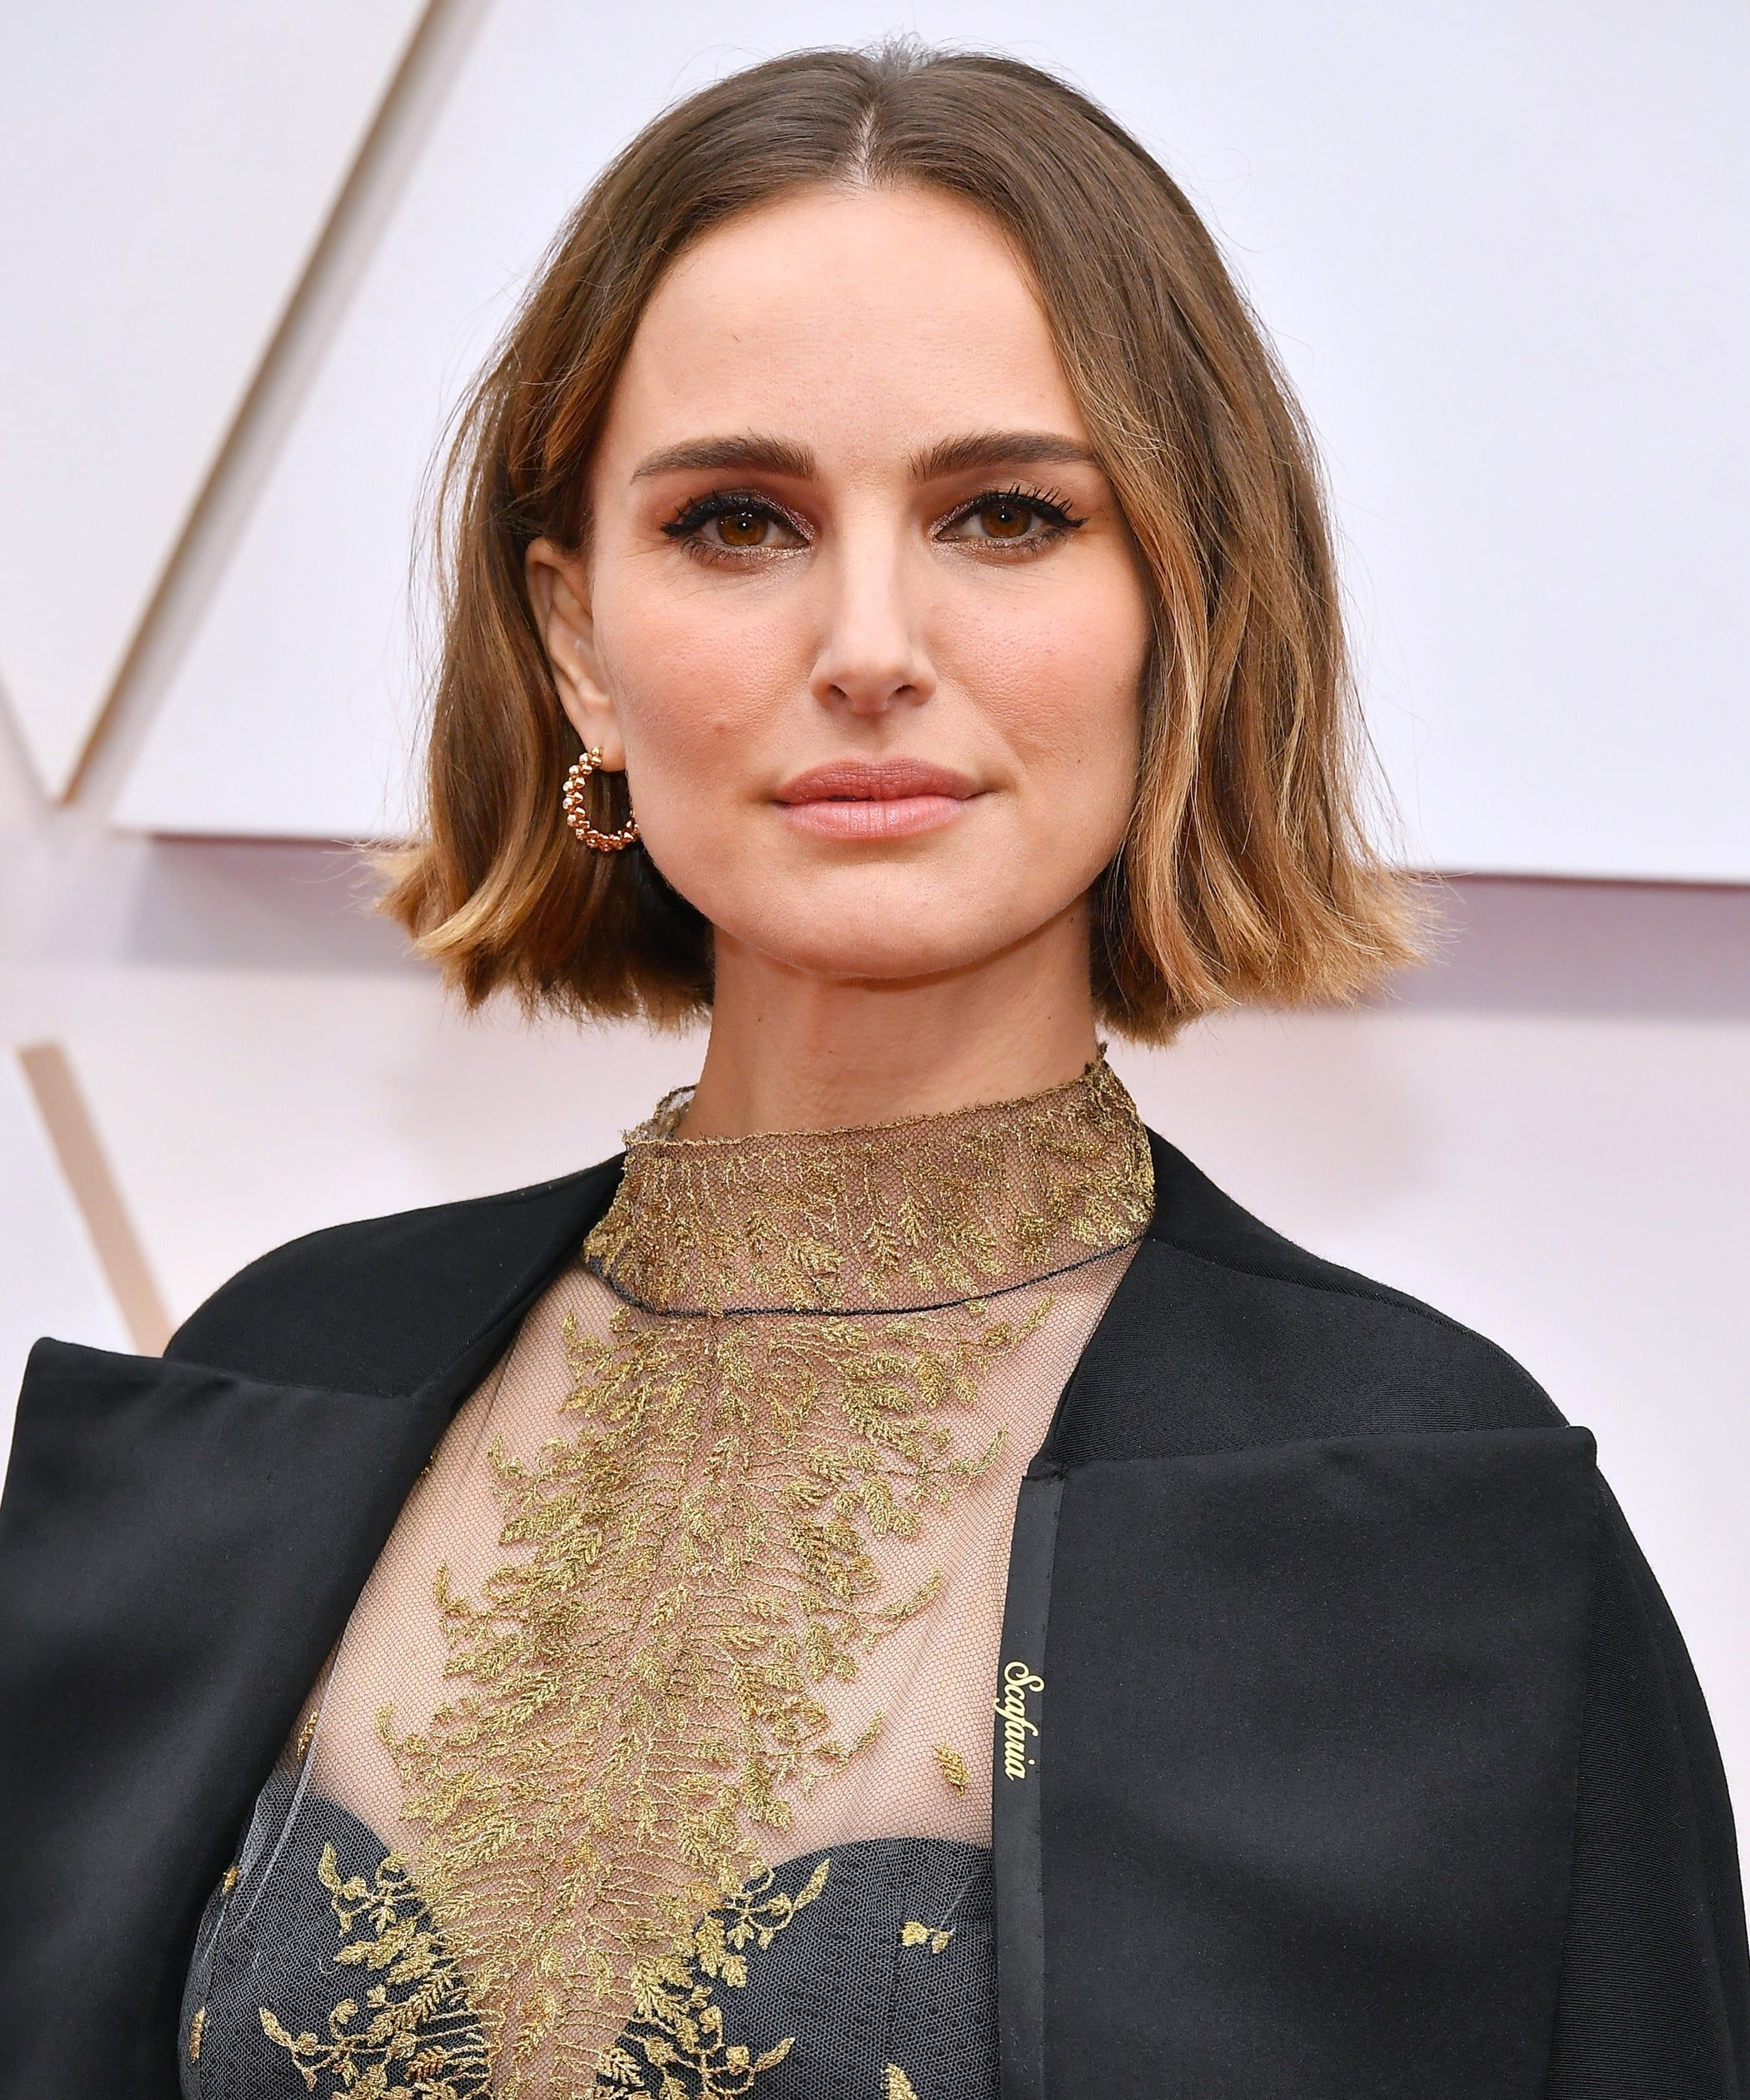 The $5 Dry Shampoo That Gave Natalie Portman French-Girl Waves At The Oscars